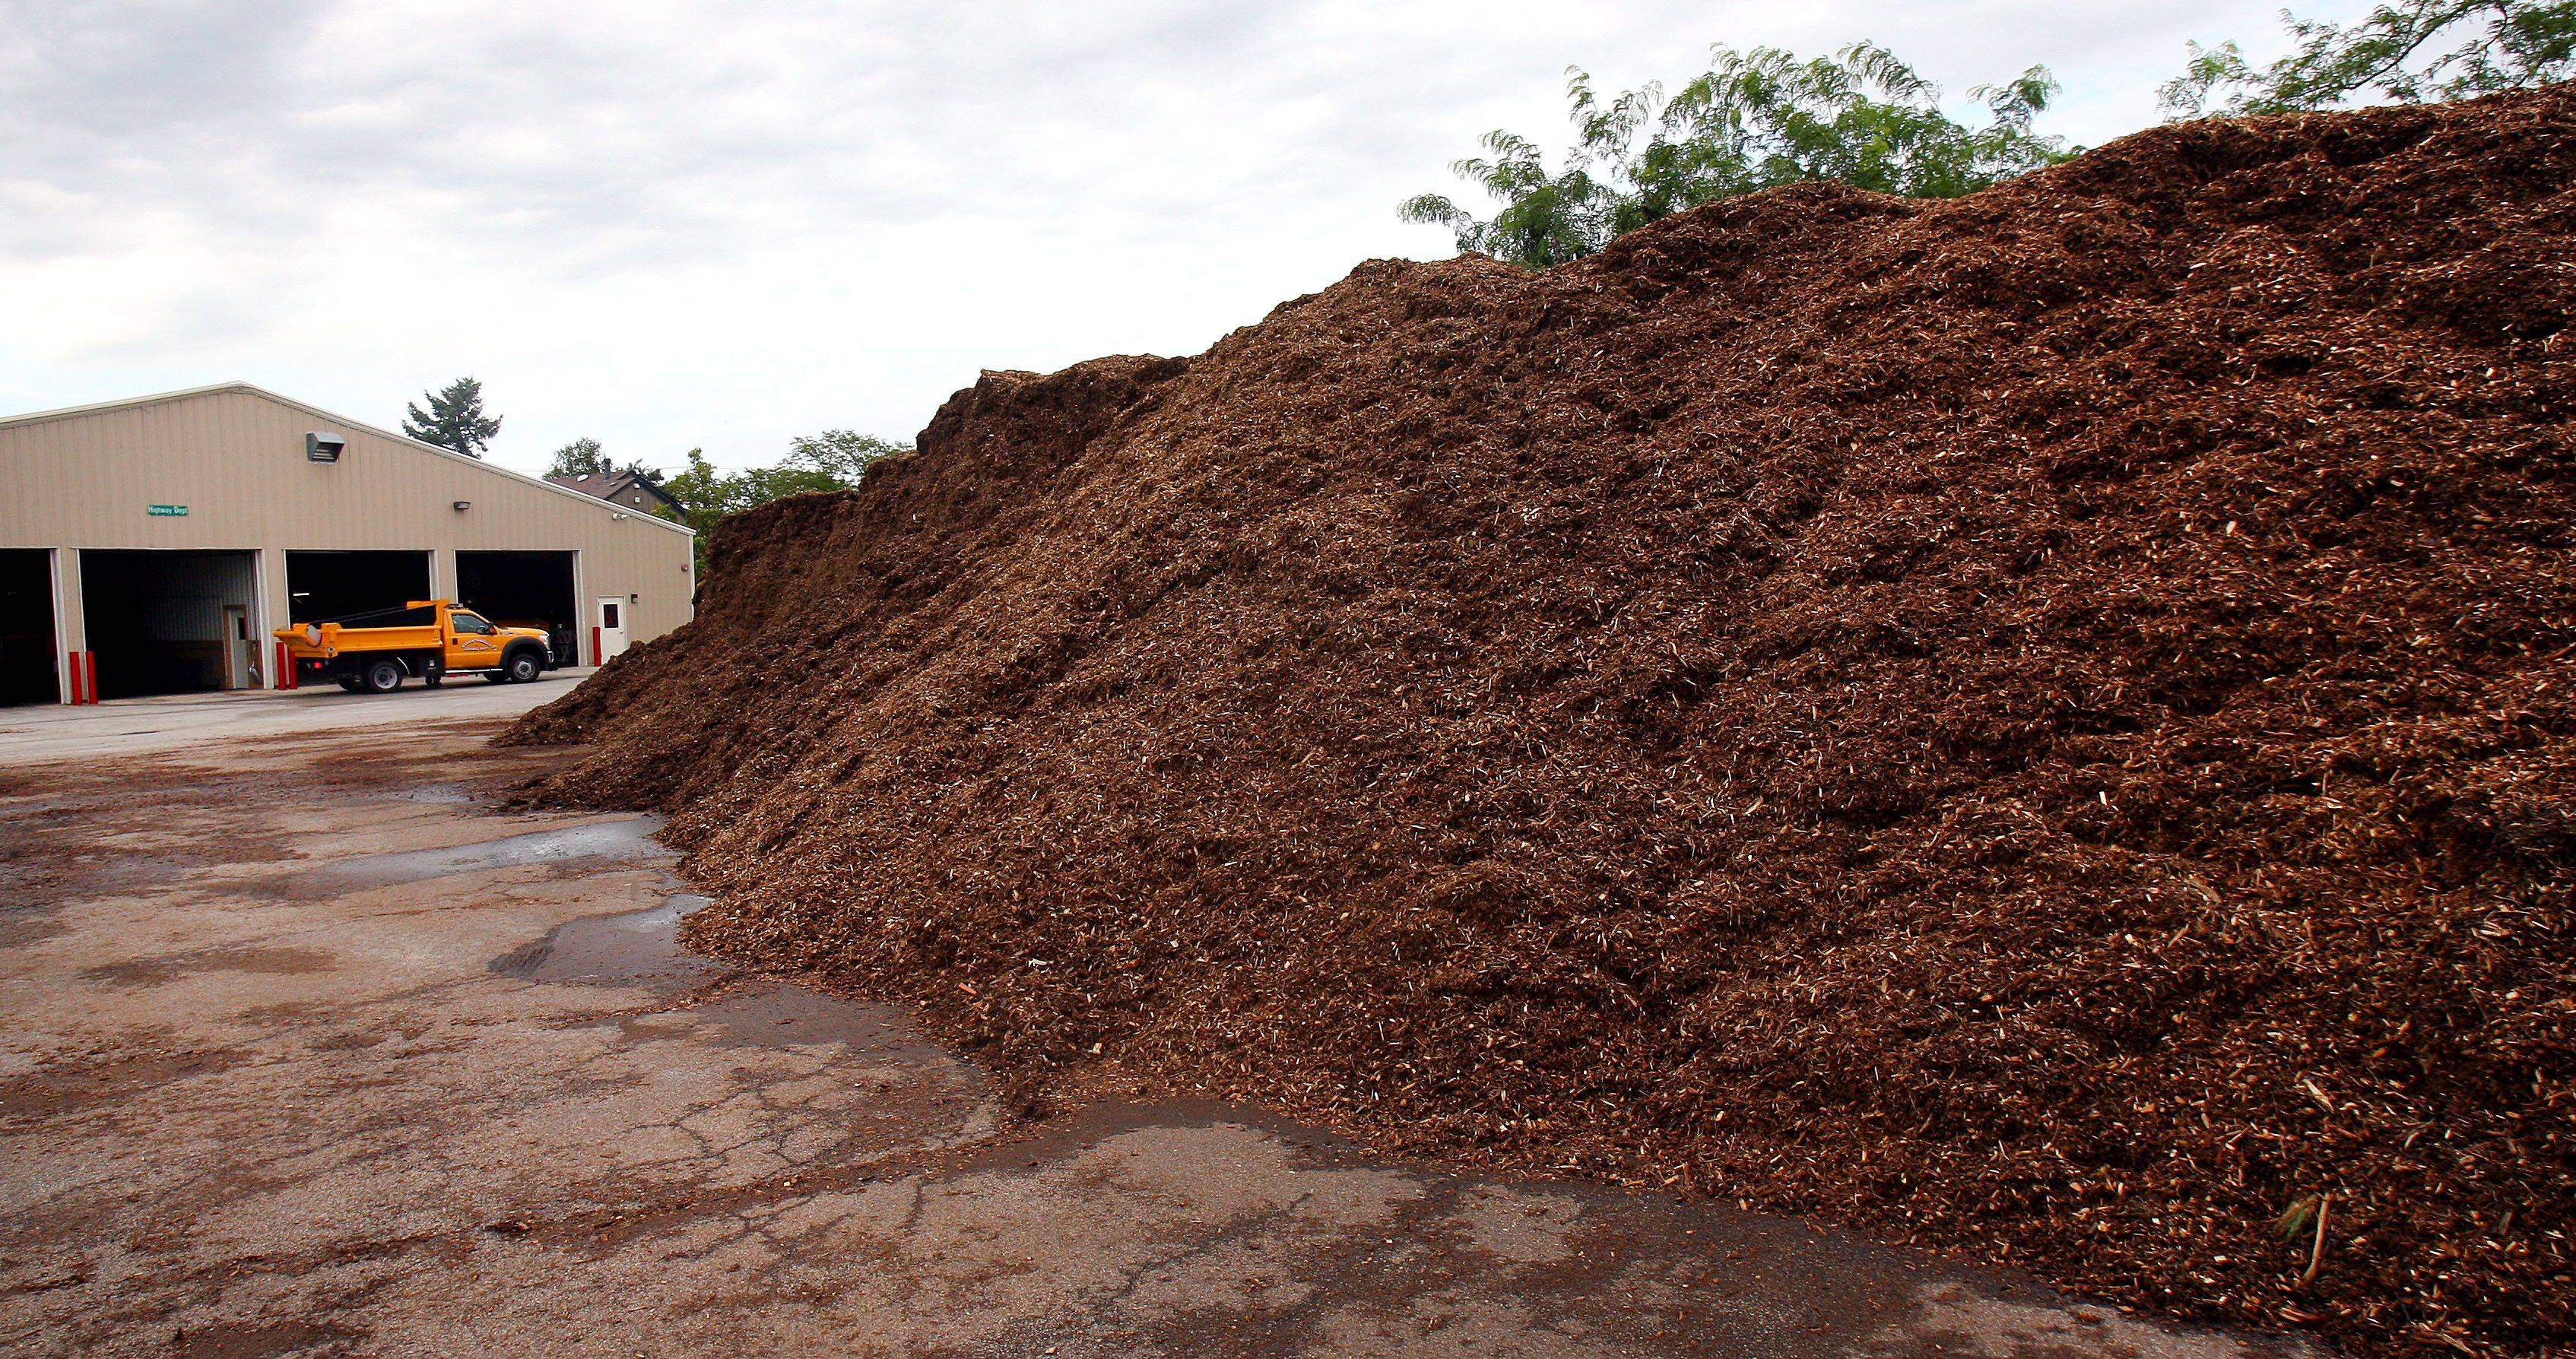 Strong storms that wreaked havoc in Lake County earlier this summer created a bounty of wood chips as evidenced by this giant pile at Warren Township Highway Department in Gurnee.